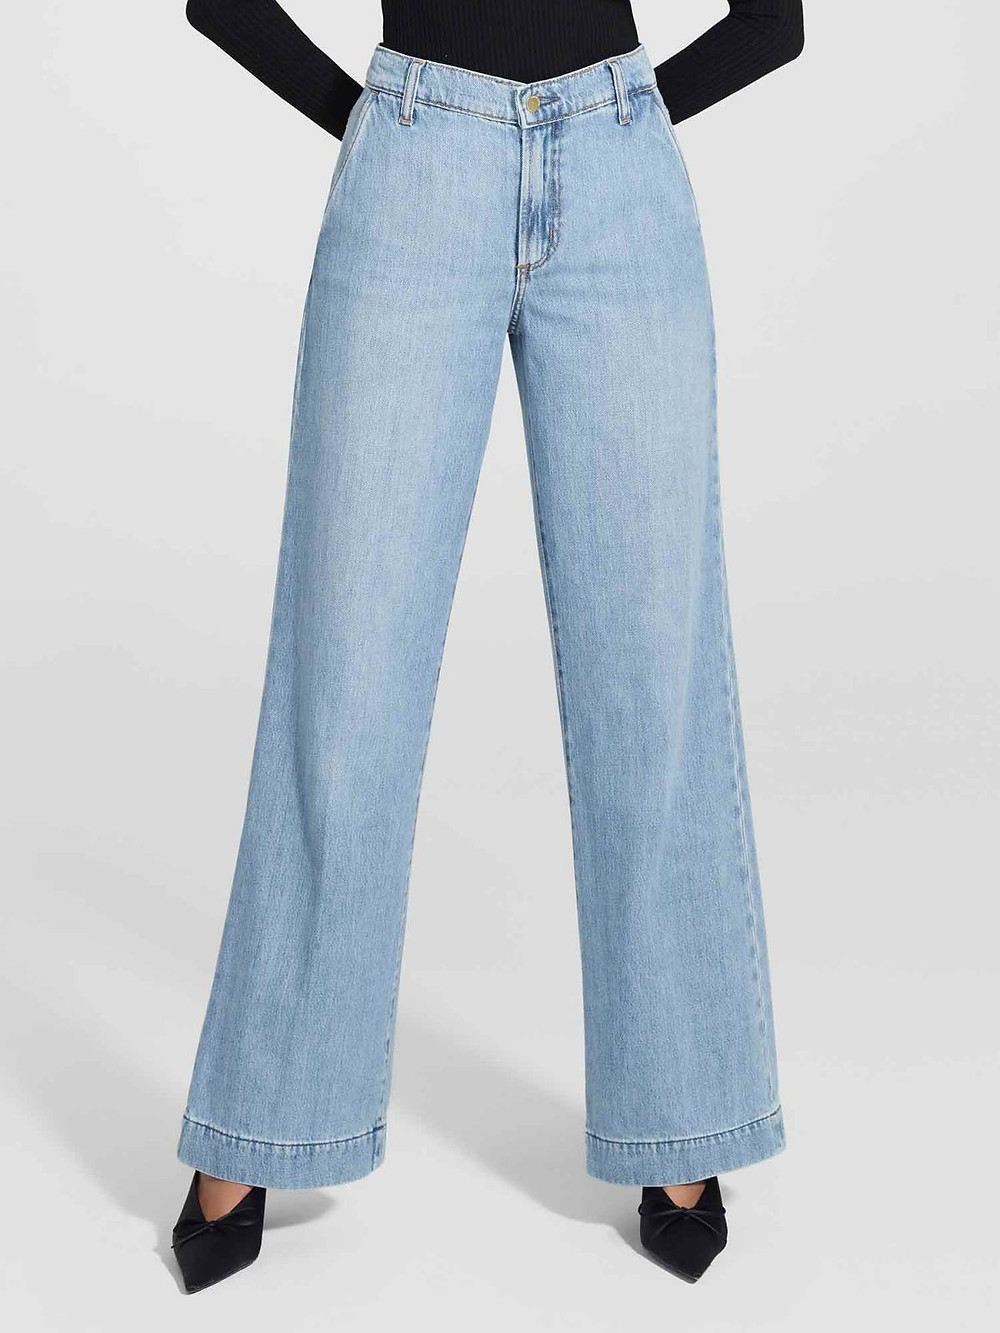 Featured on Nobody Denim's Website, these Wide leg jeans are a popular style among the anti-skinny trend.